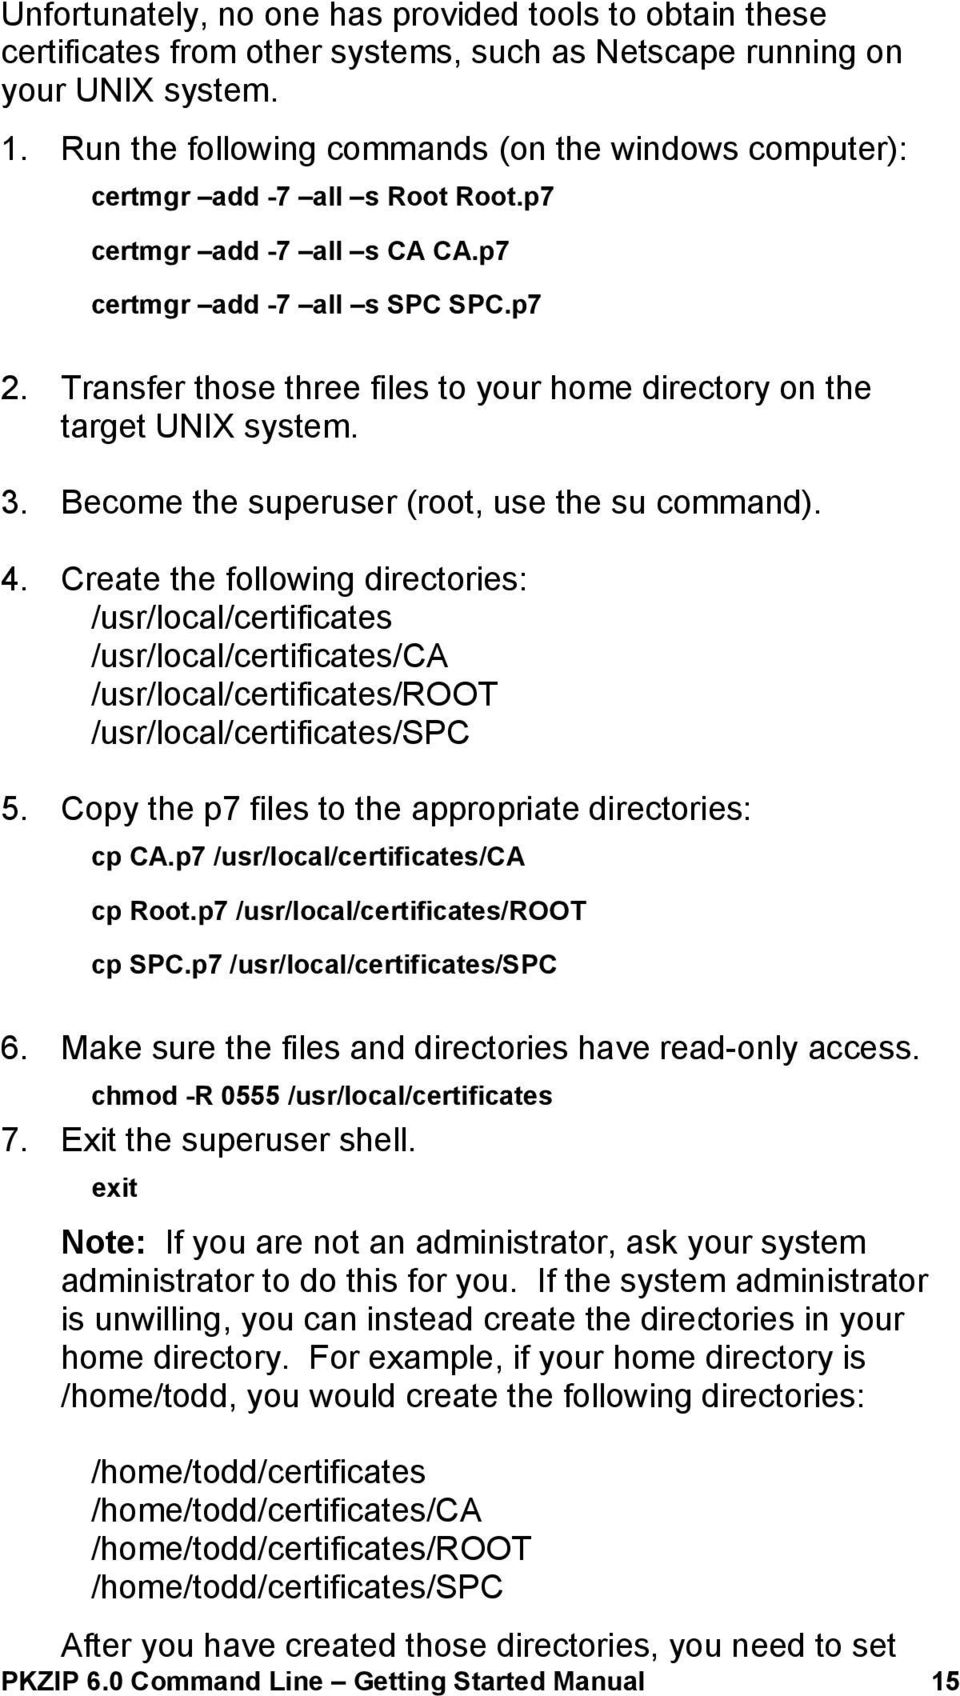 PKZIP 6 0 Command Line Getting Started Manual - PDF